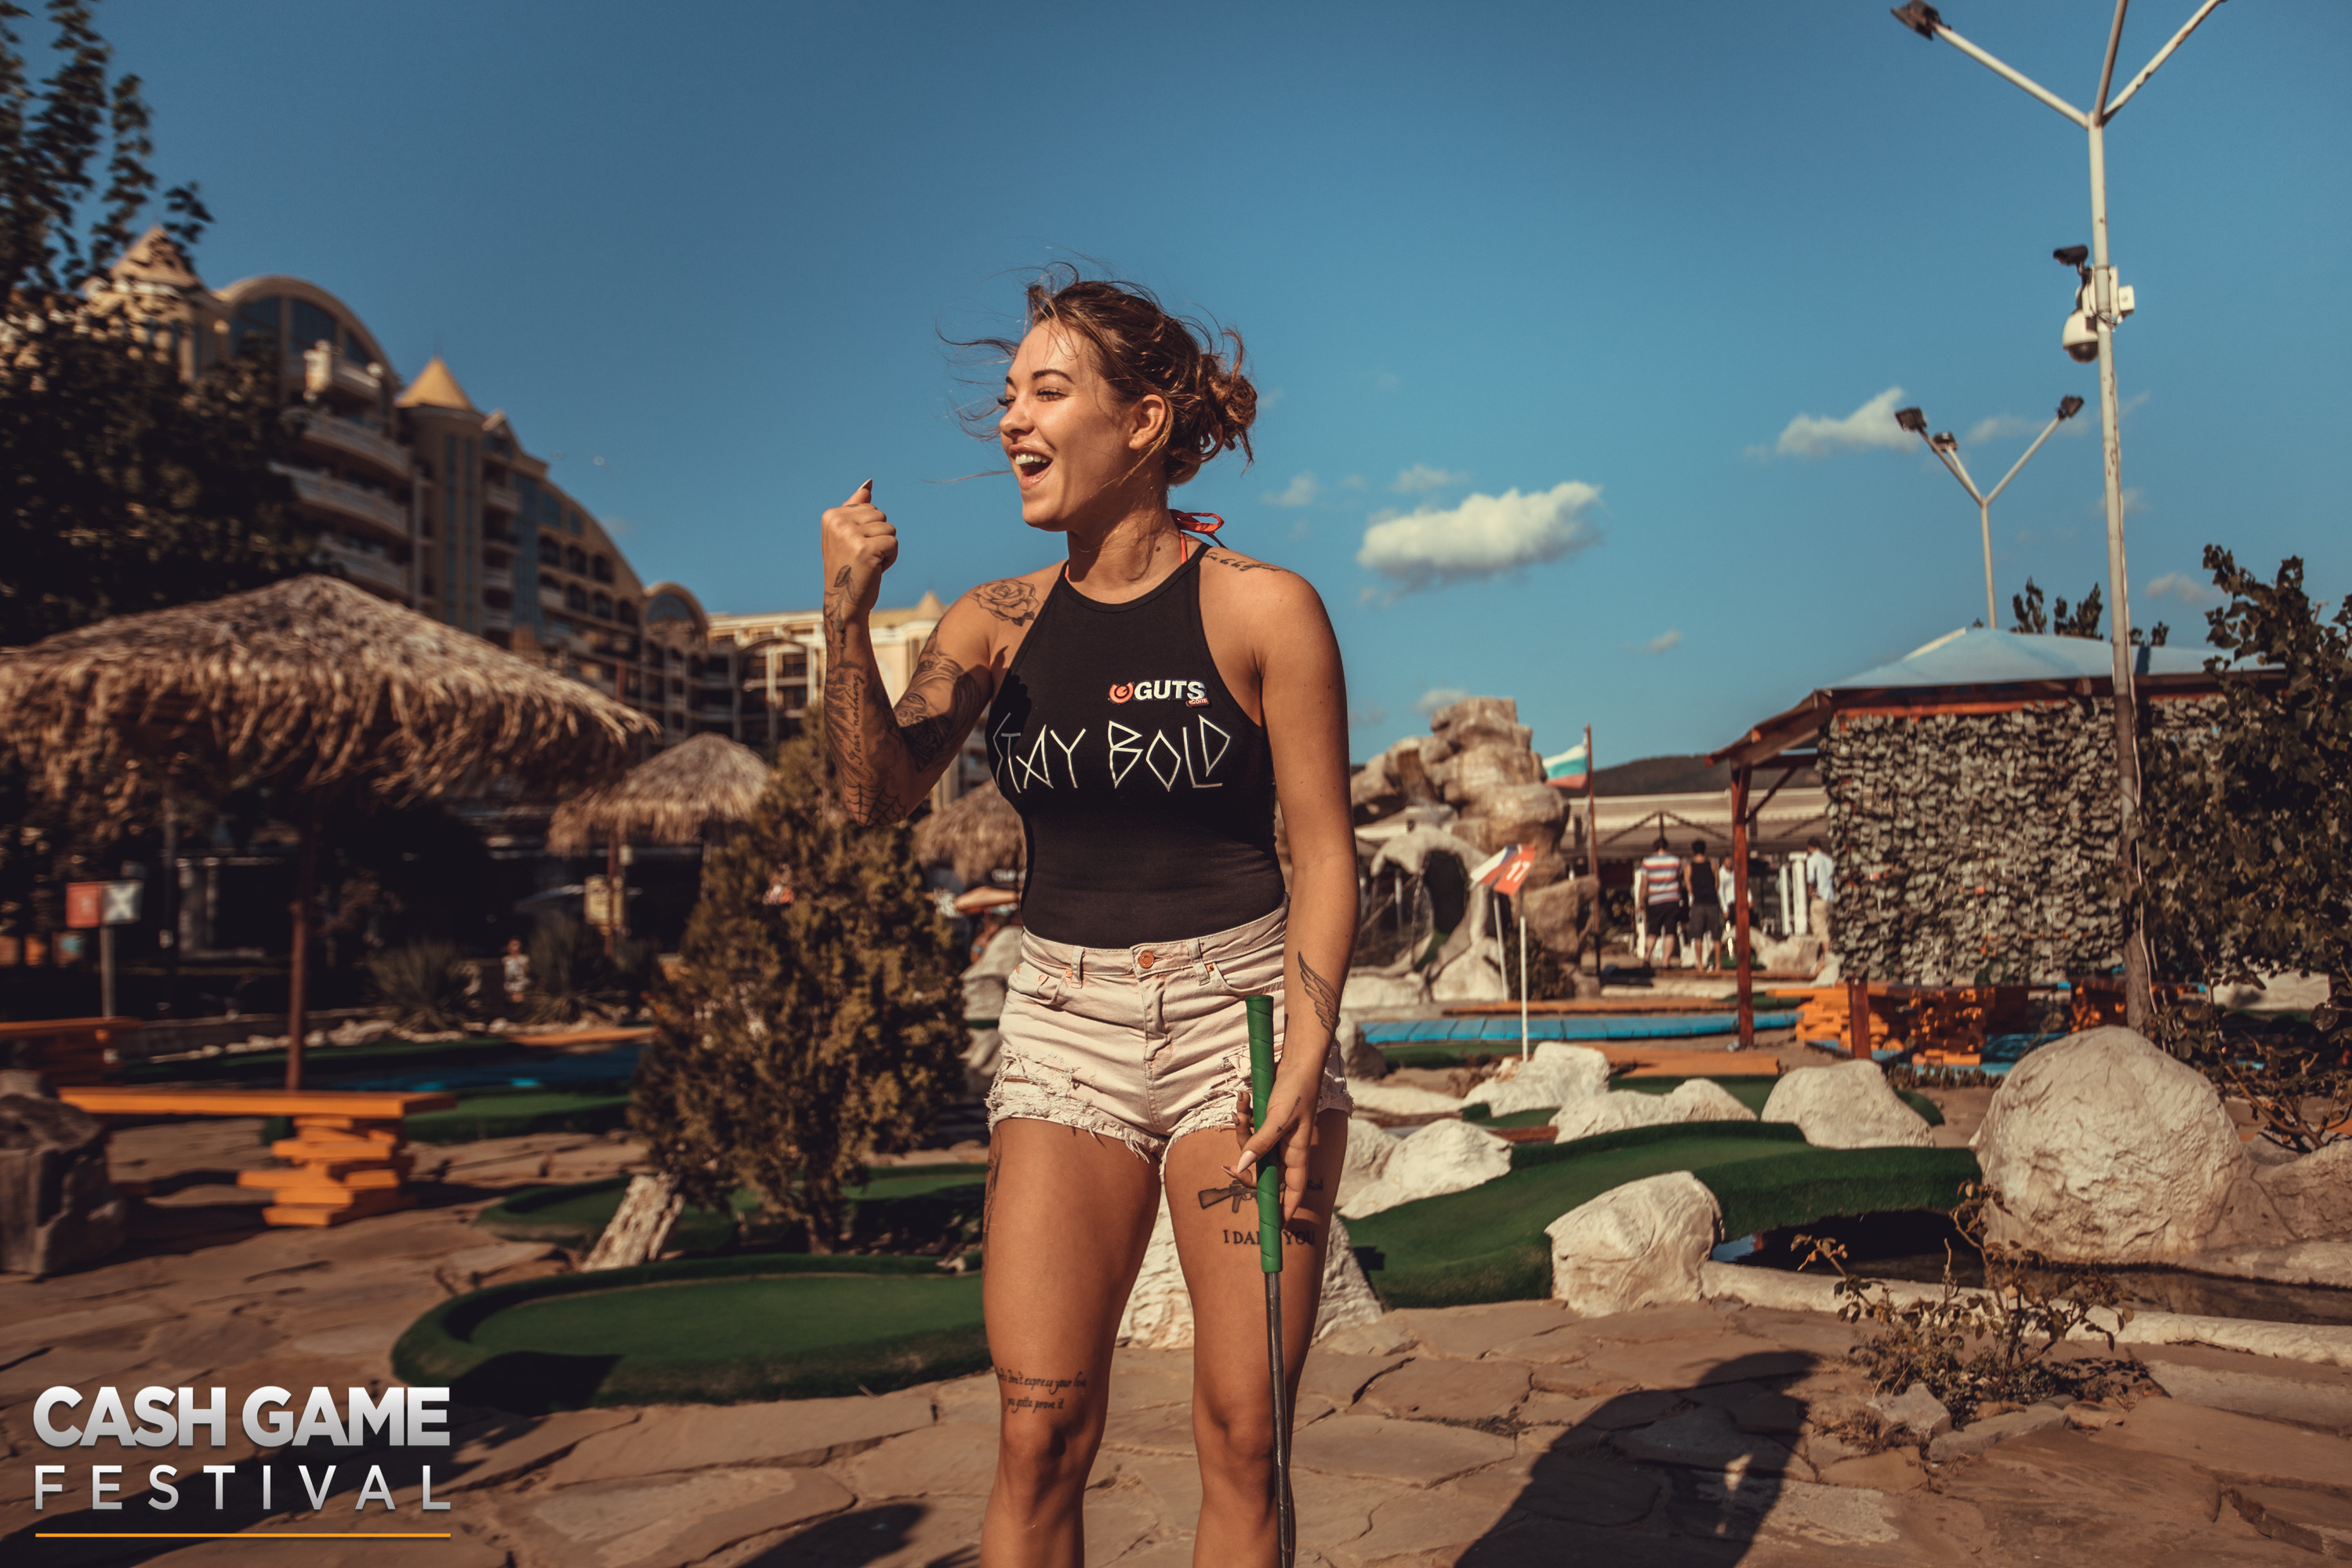 Cash Game Festival Bulgaria Mini-Golf